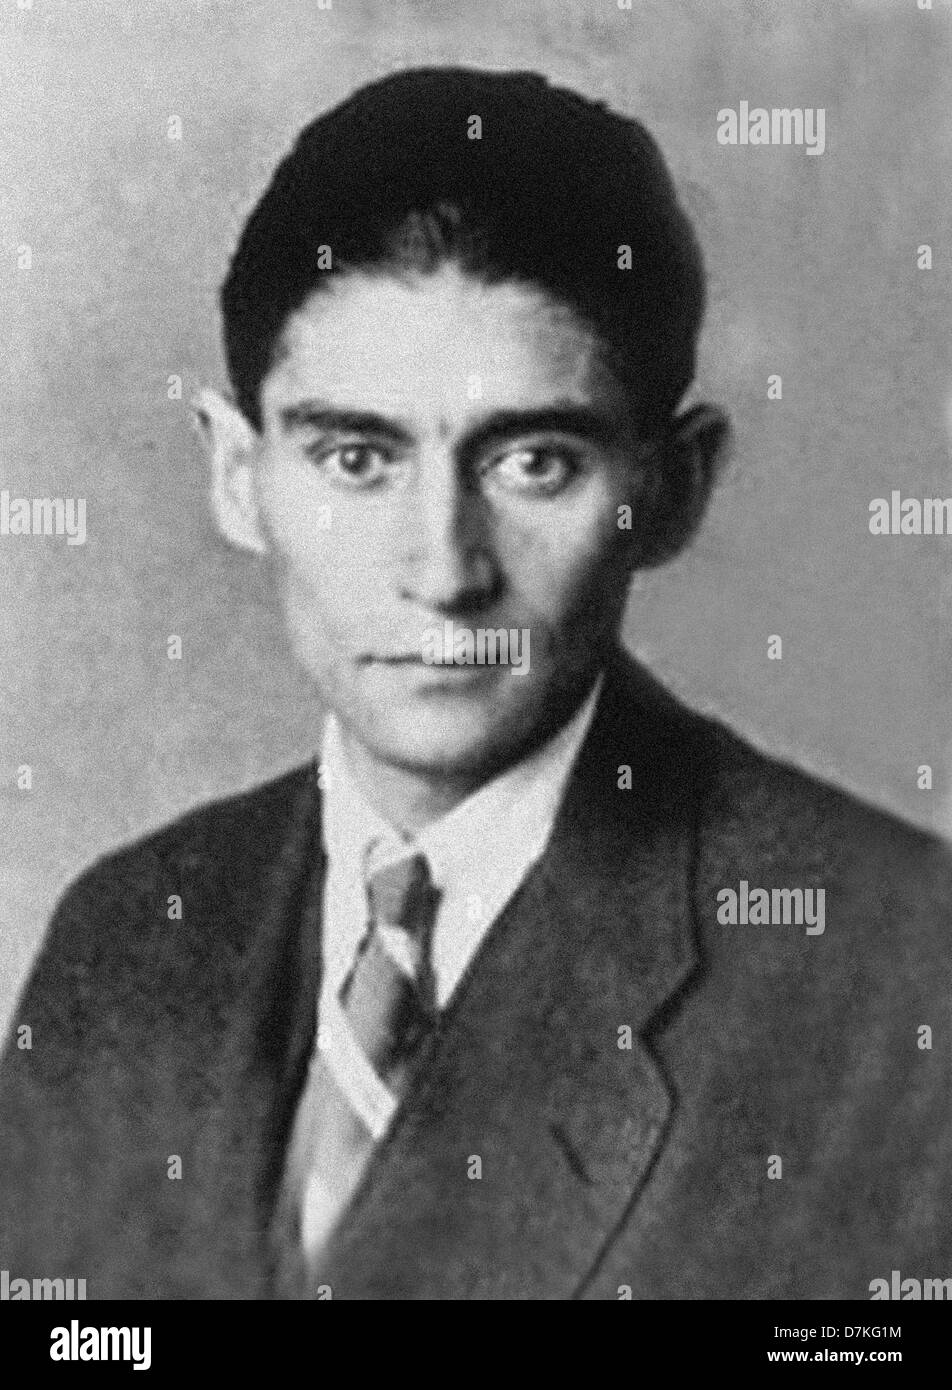 a biography of franz kafka the german language writer of novels Franz kafka (july 3, 1883 - june 3, 1924) was one of the major german language novelists and short story writers of the twentieth century, whose unique body of writing much of it incomplete and published posthumously despite his wish that it be destroyed has become iconic in western.